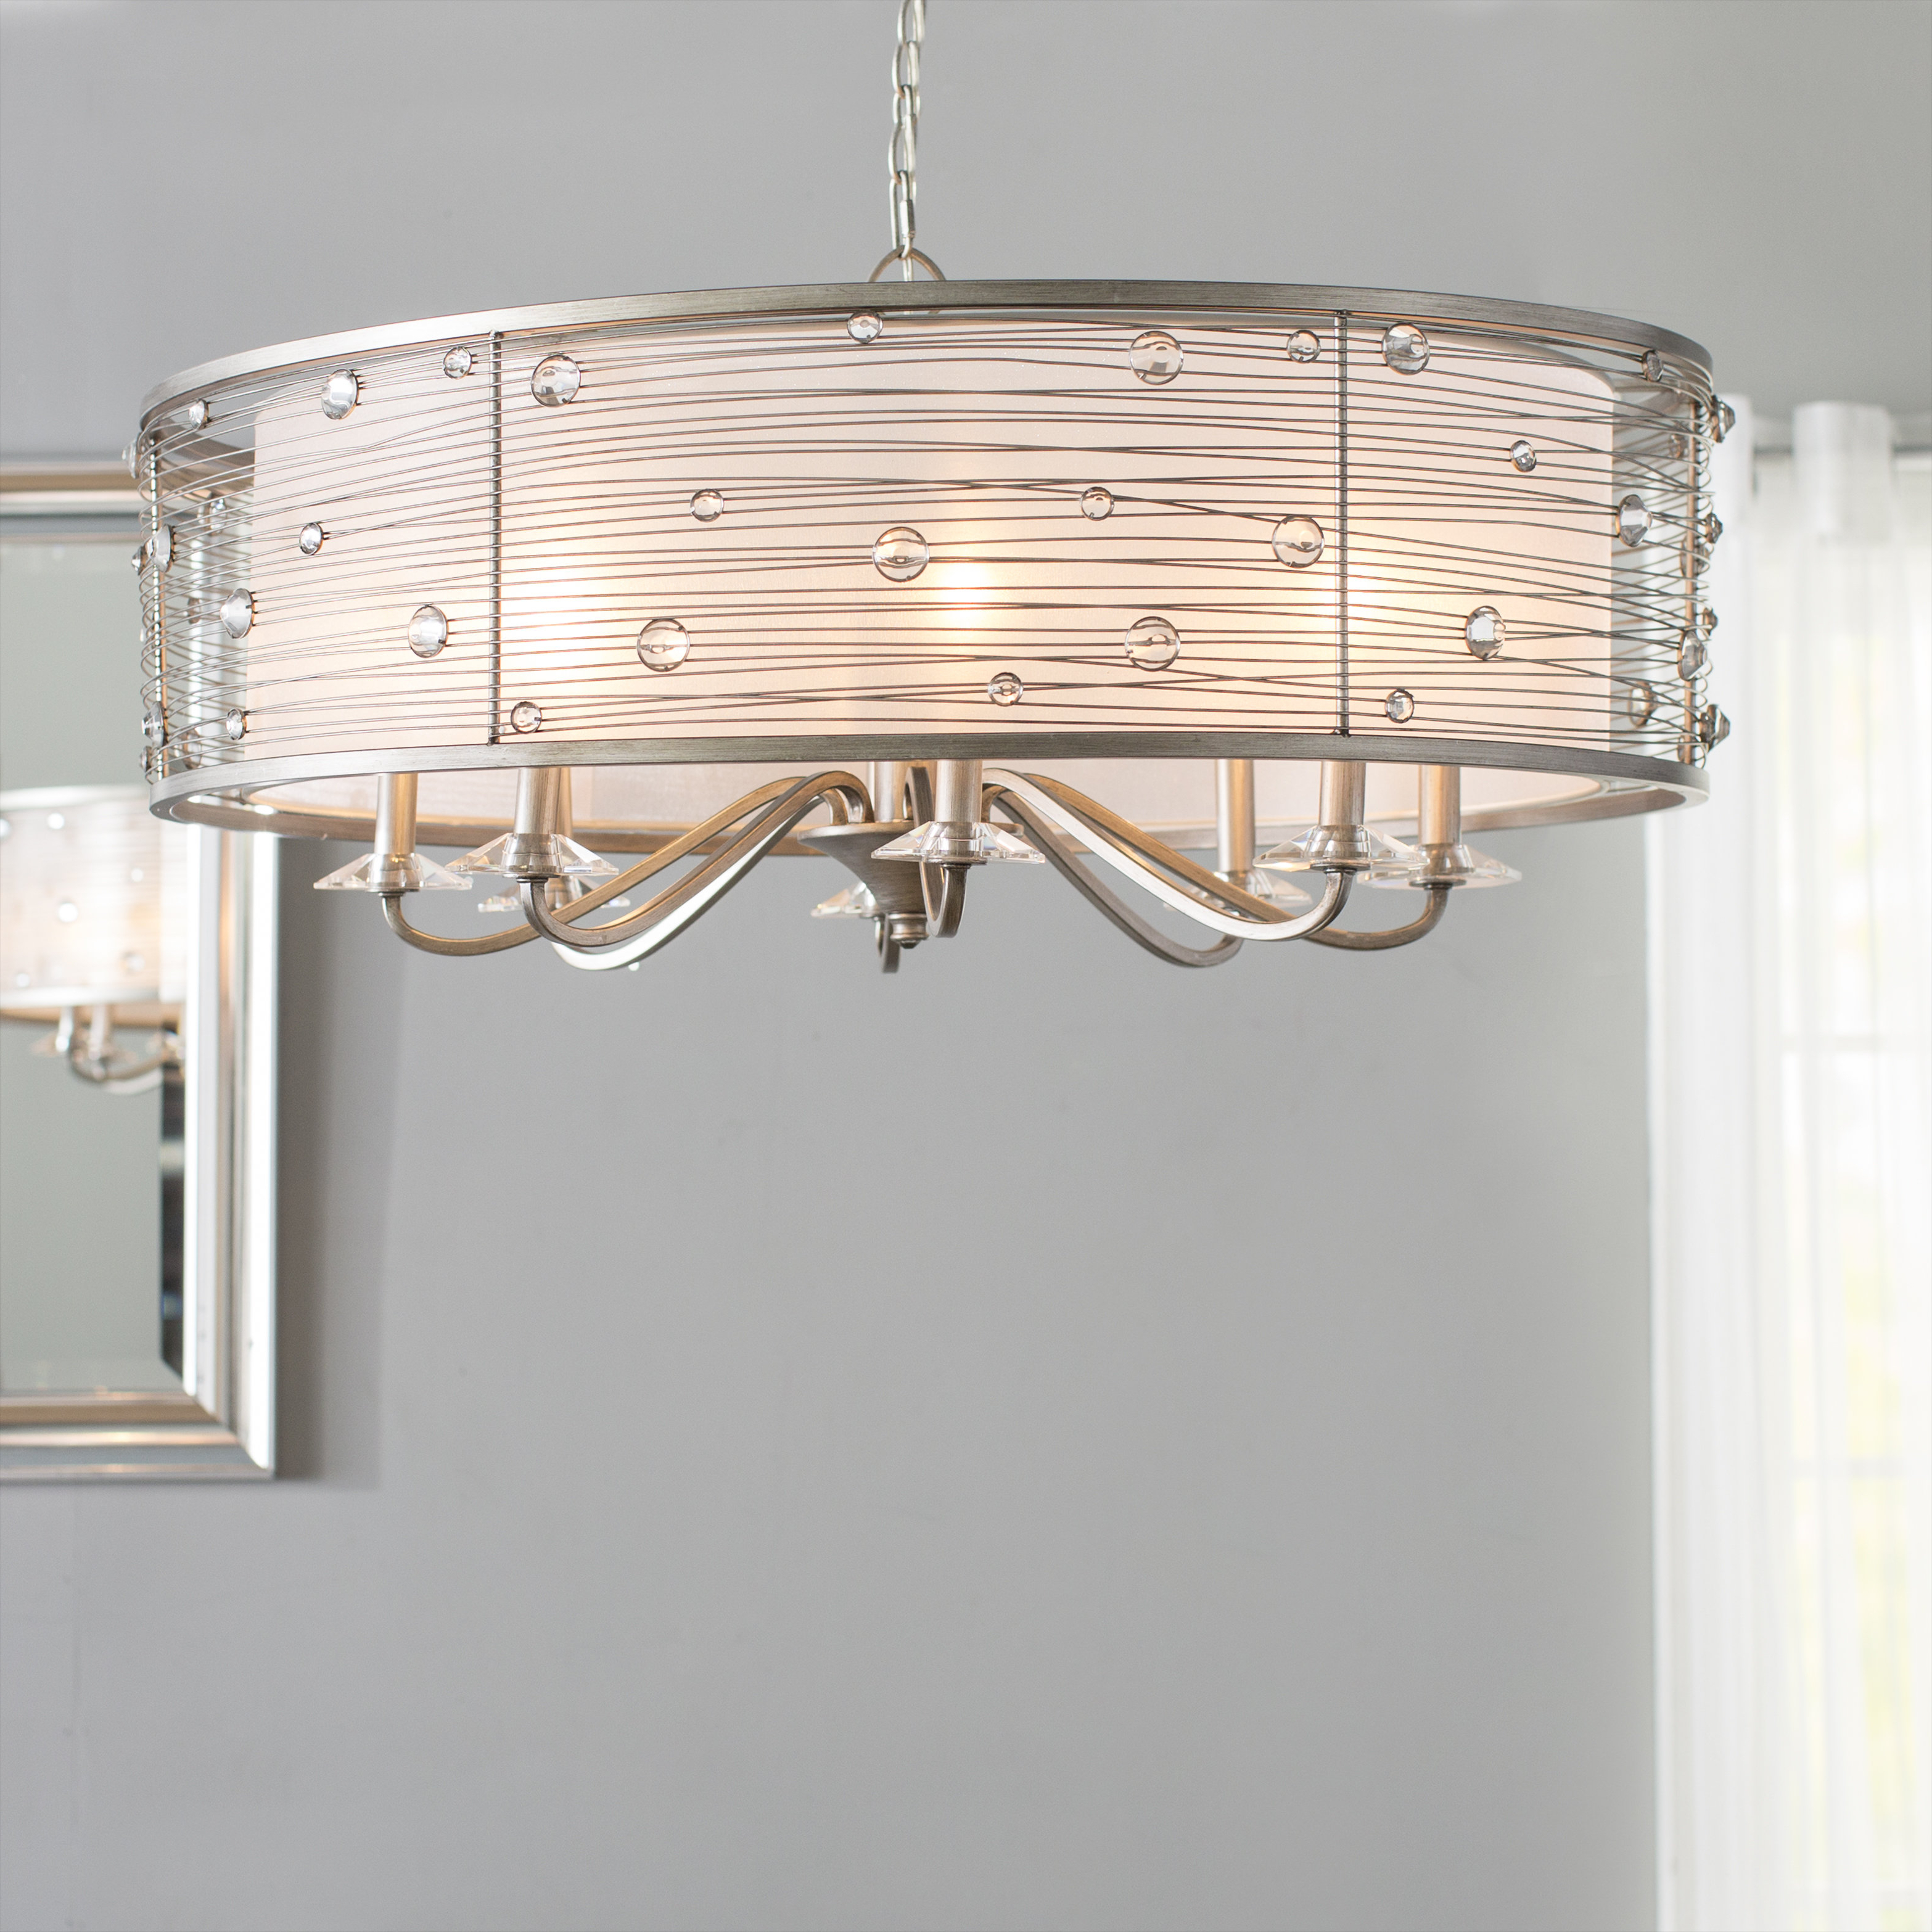 Hermione 8-Light Drum Chandelier for Most Popular Abel 5-Light Drum Chandeliers